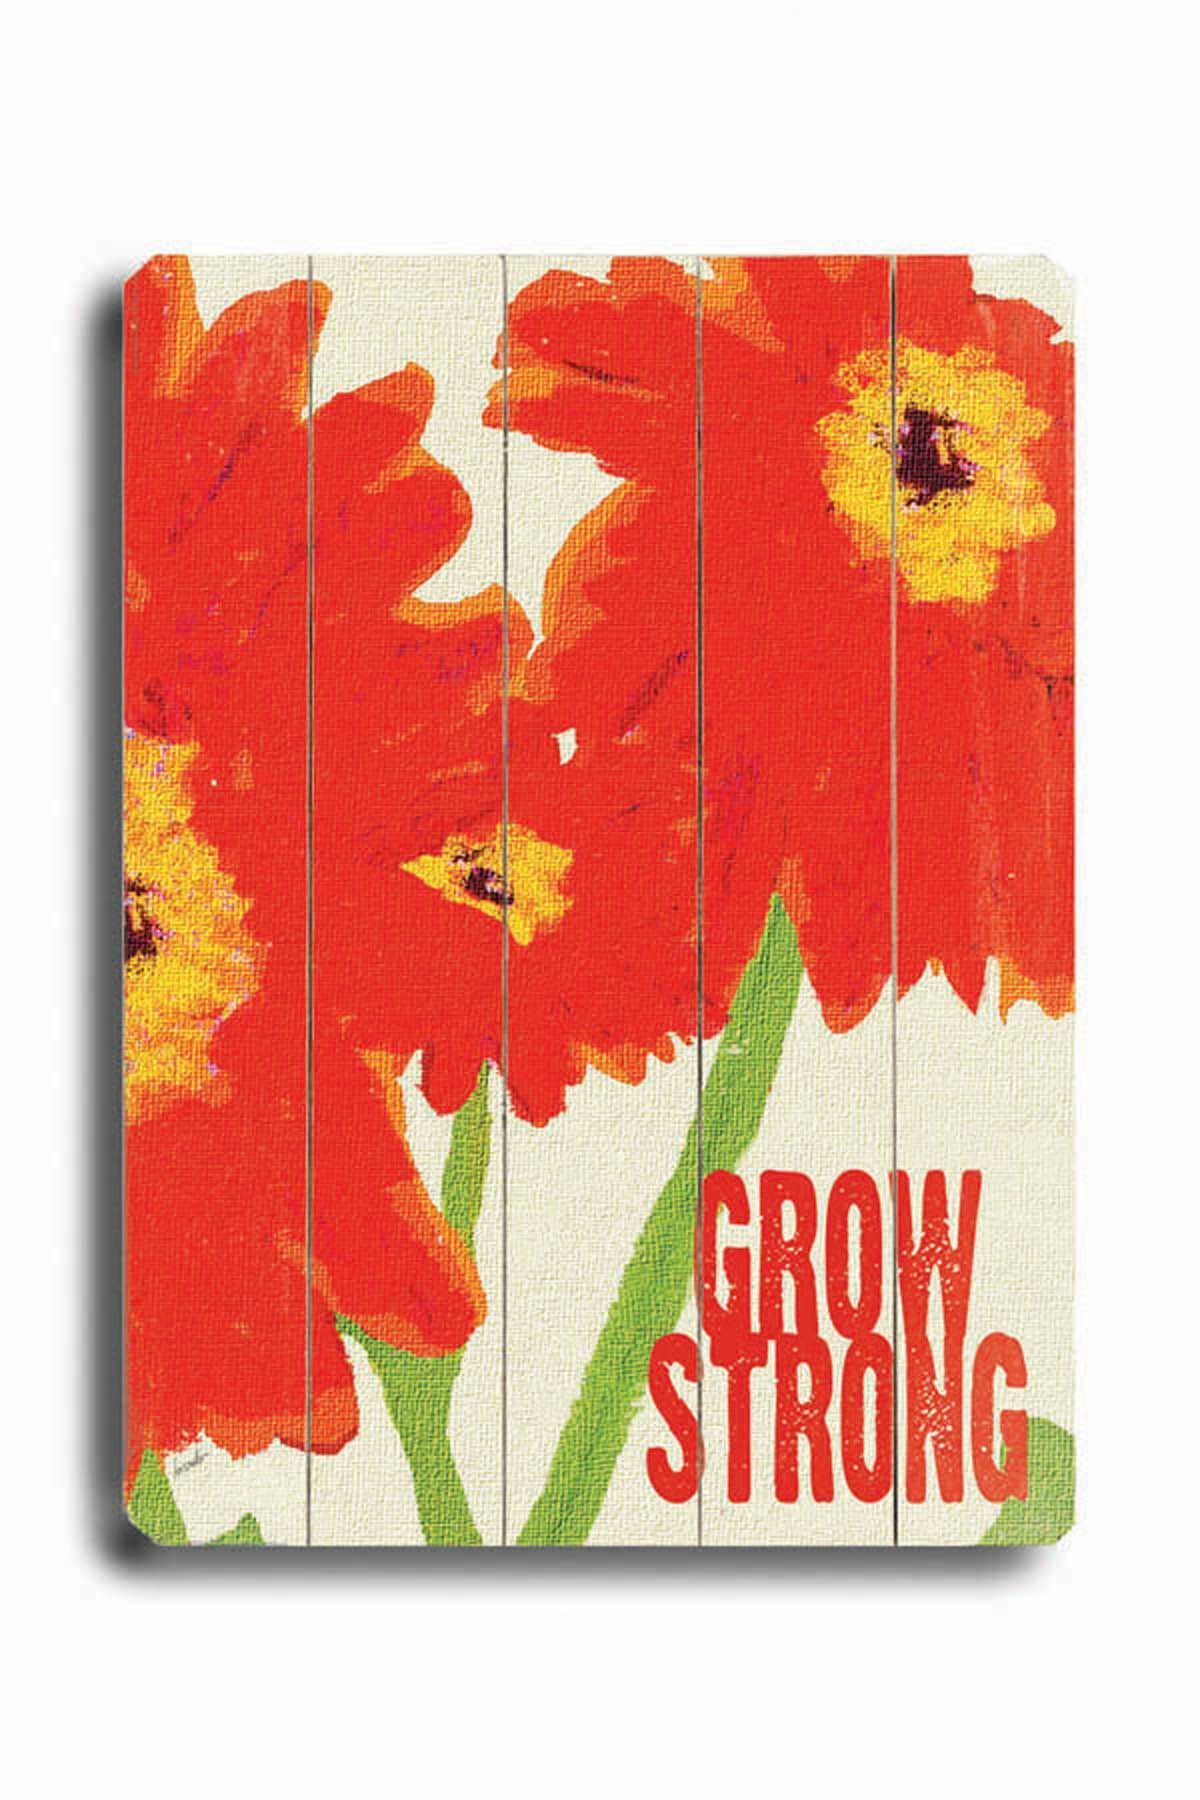 Grow Strong Planked Graphic Art Plaque